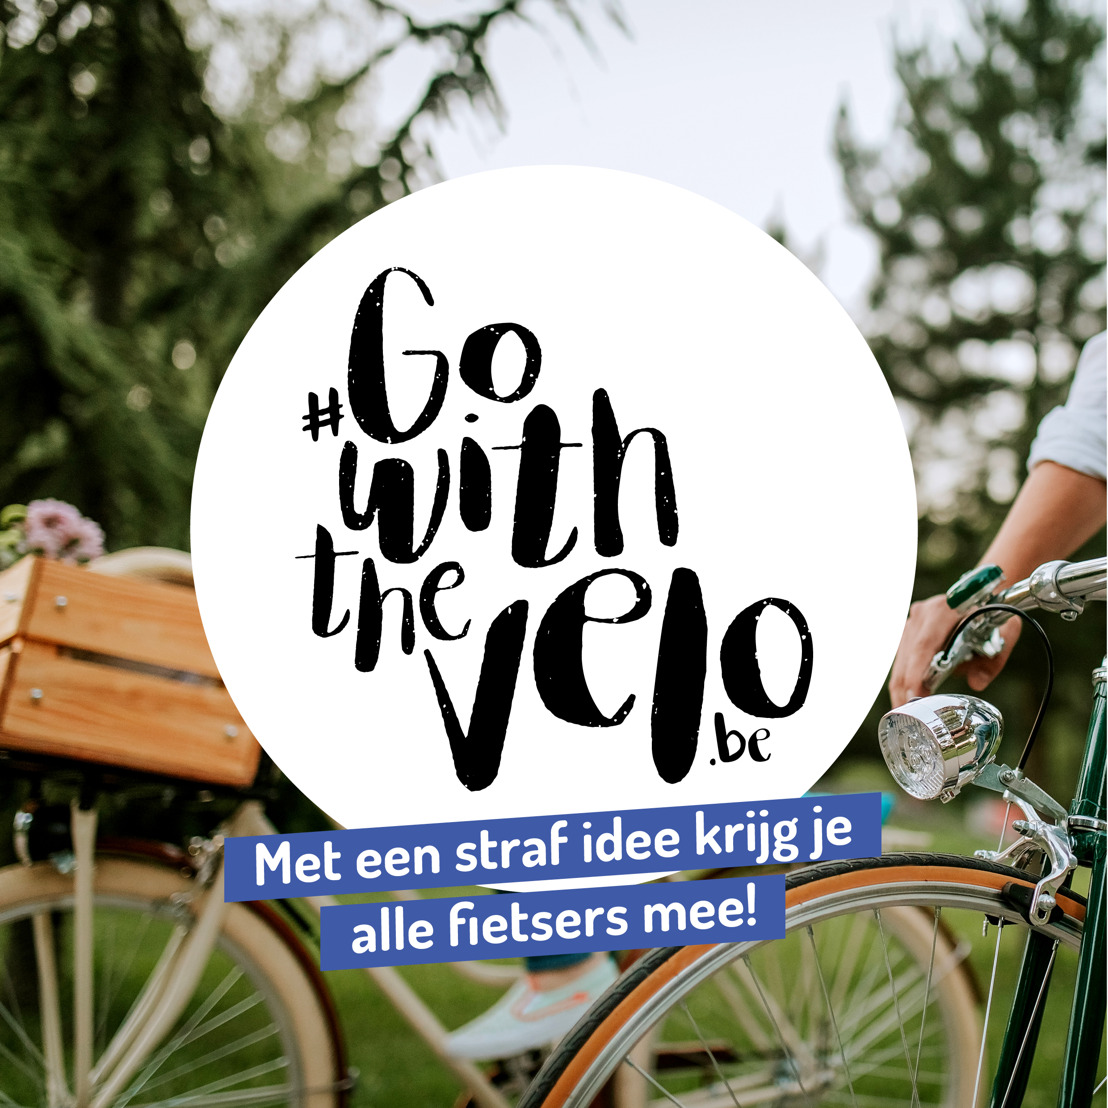 Go With The Velo zet Herent op de fiets!